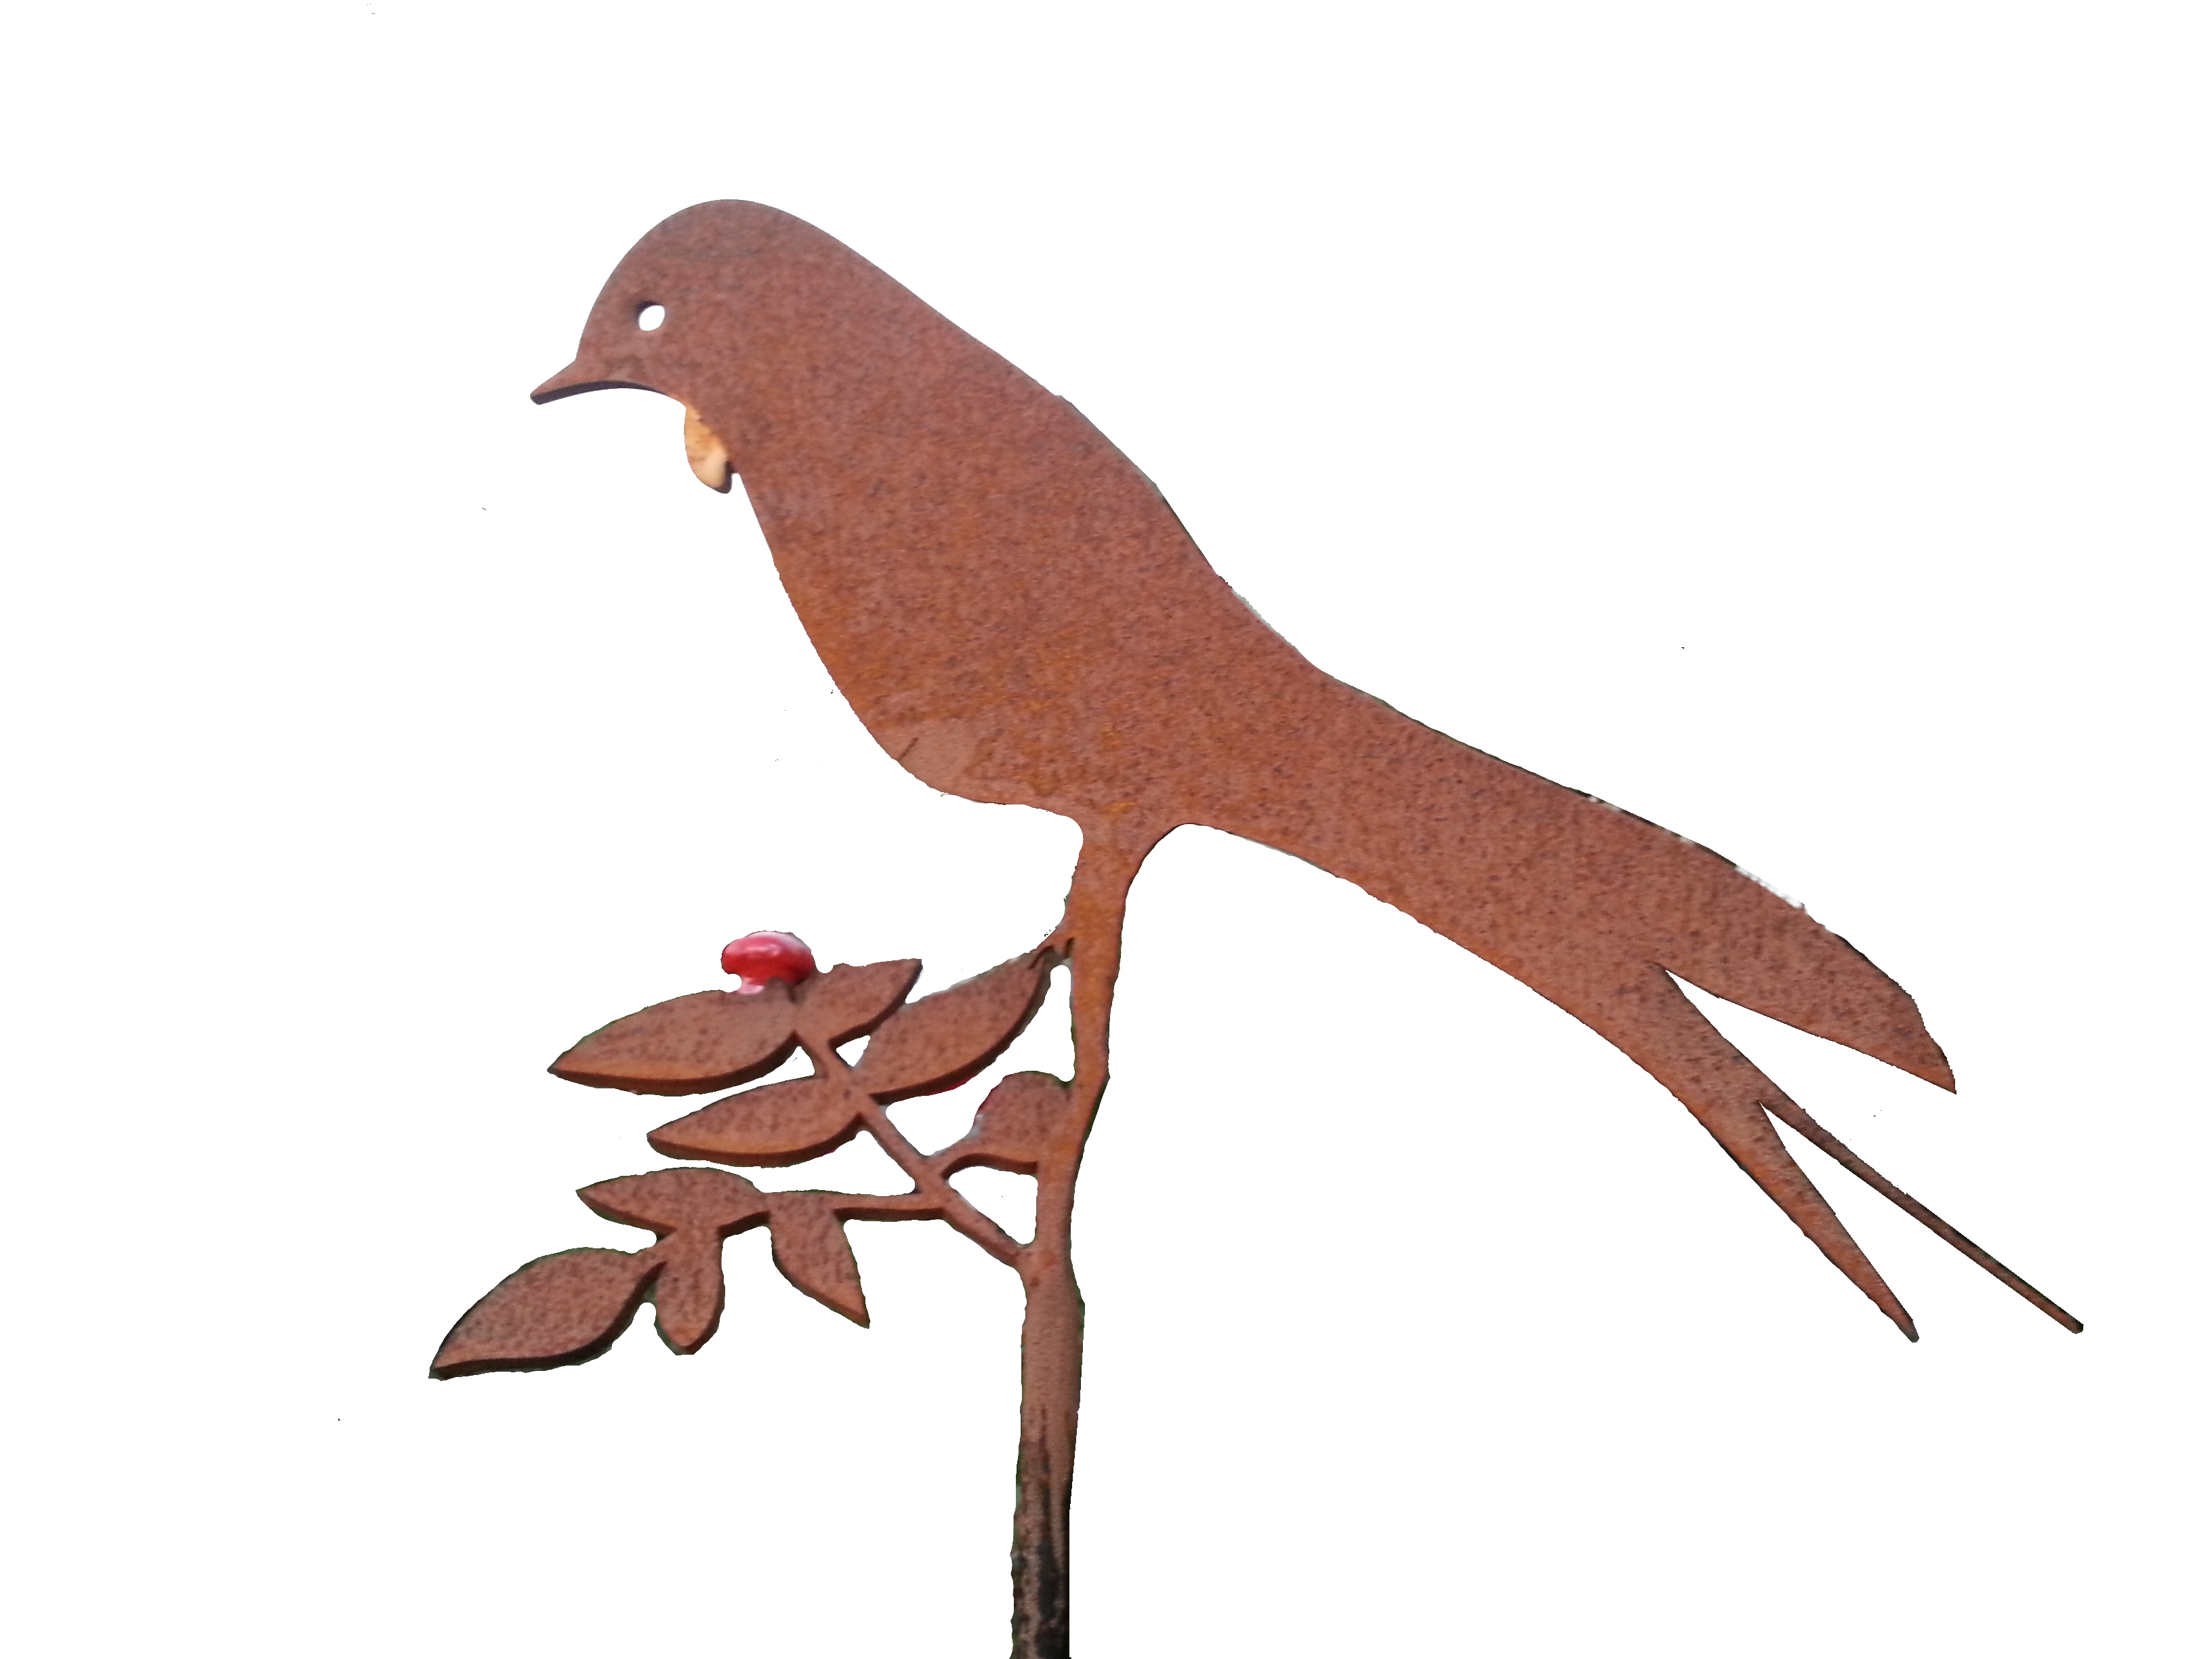 Metalcraft Engineering Garden Feature Art Tui Metalwork Raw steel rusty